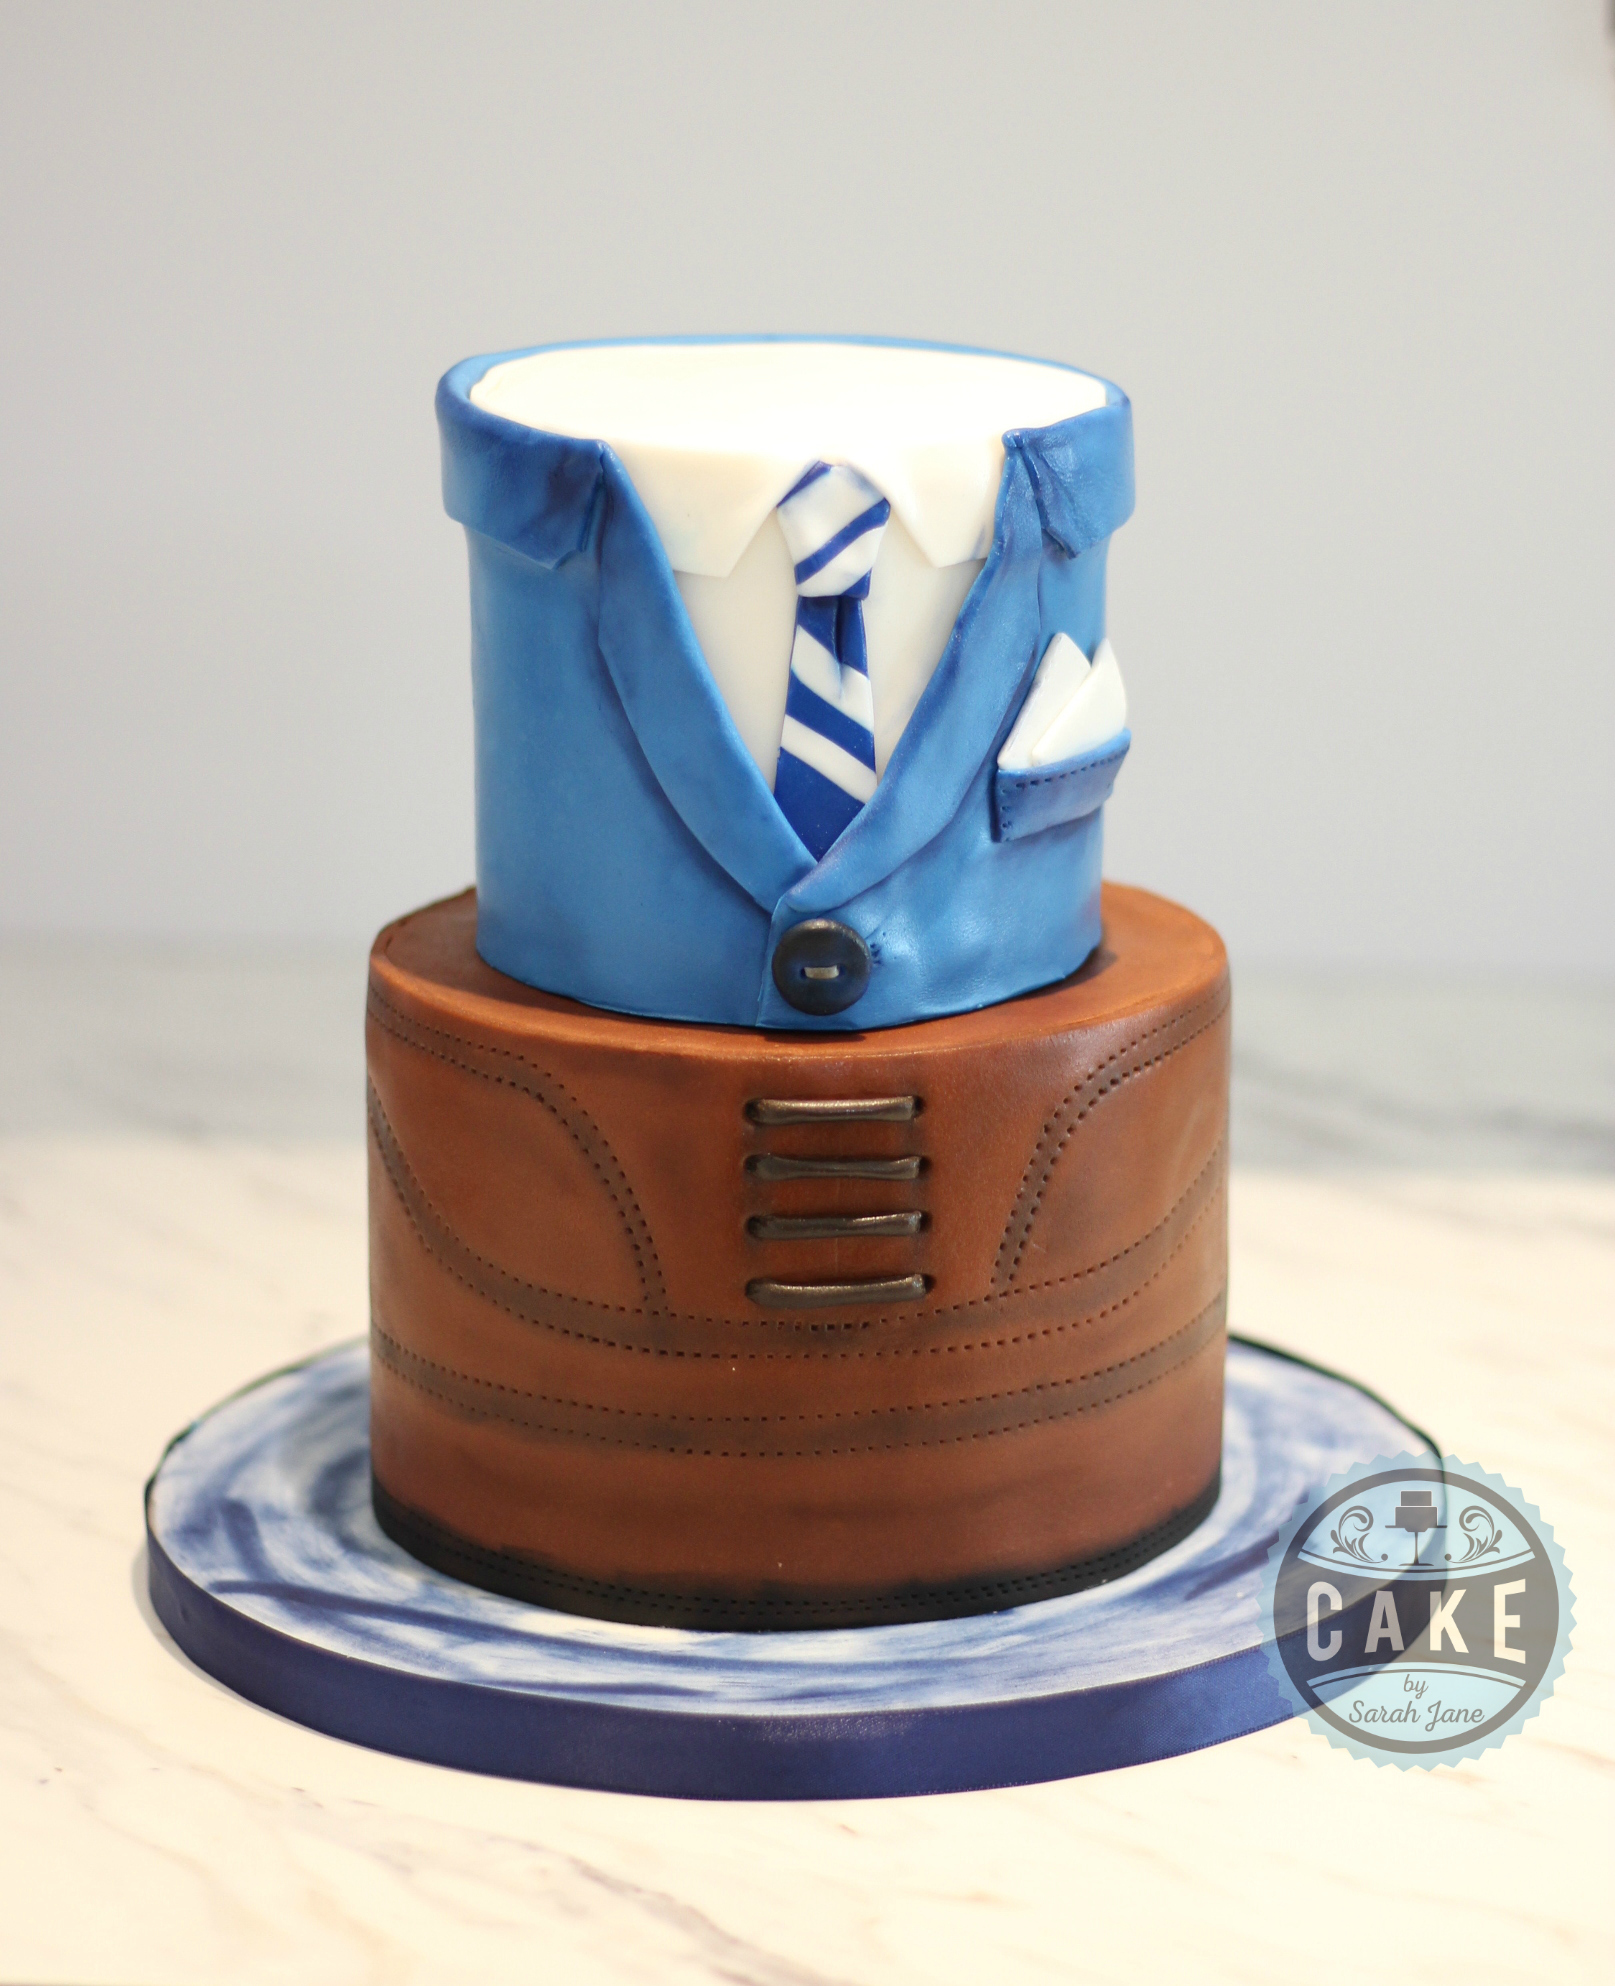 Suit Dress Shoe Cake Cake by Sarah Jane Custom Cake Decorator